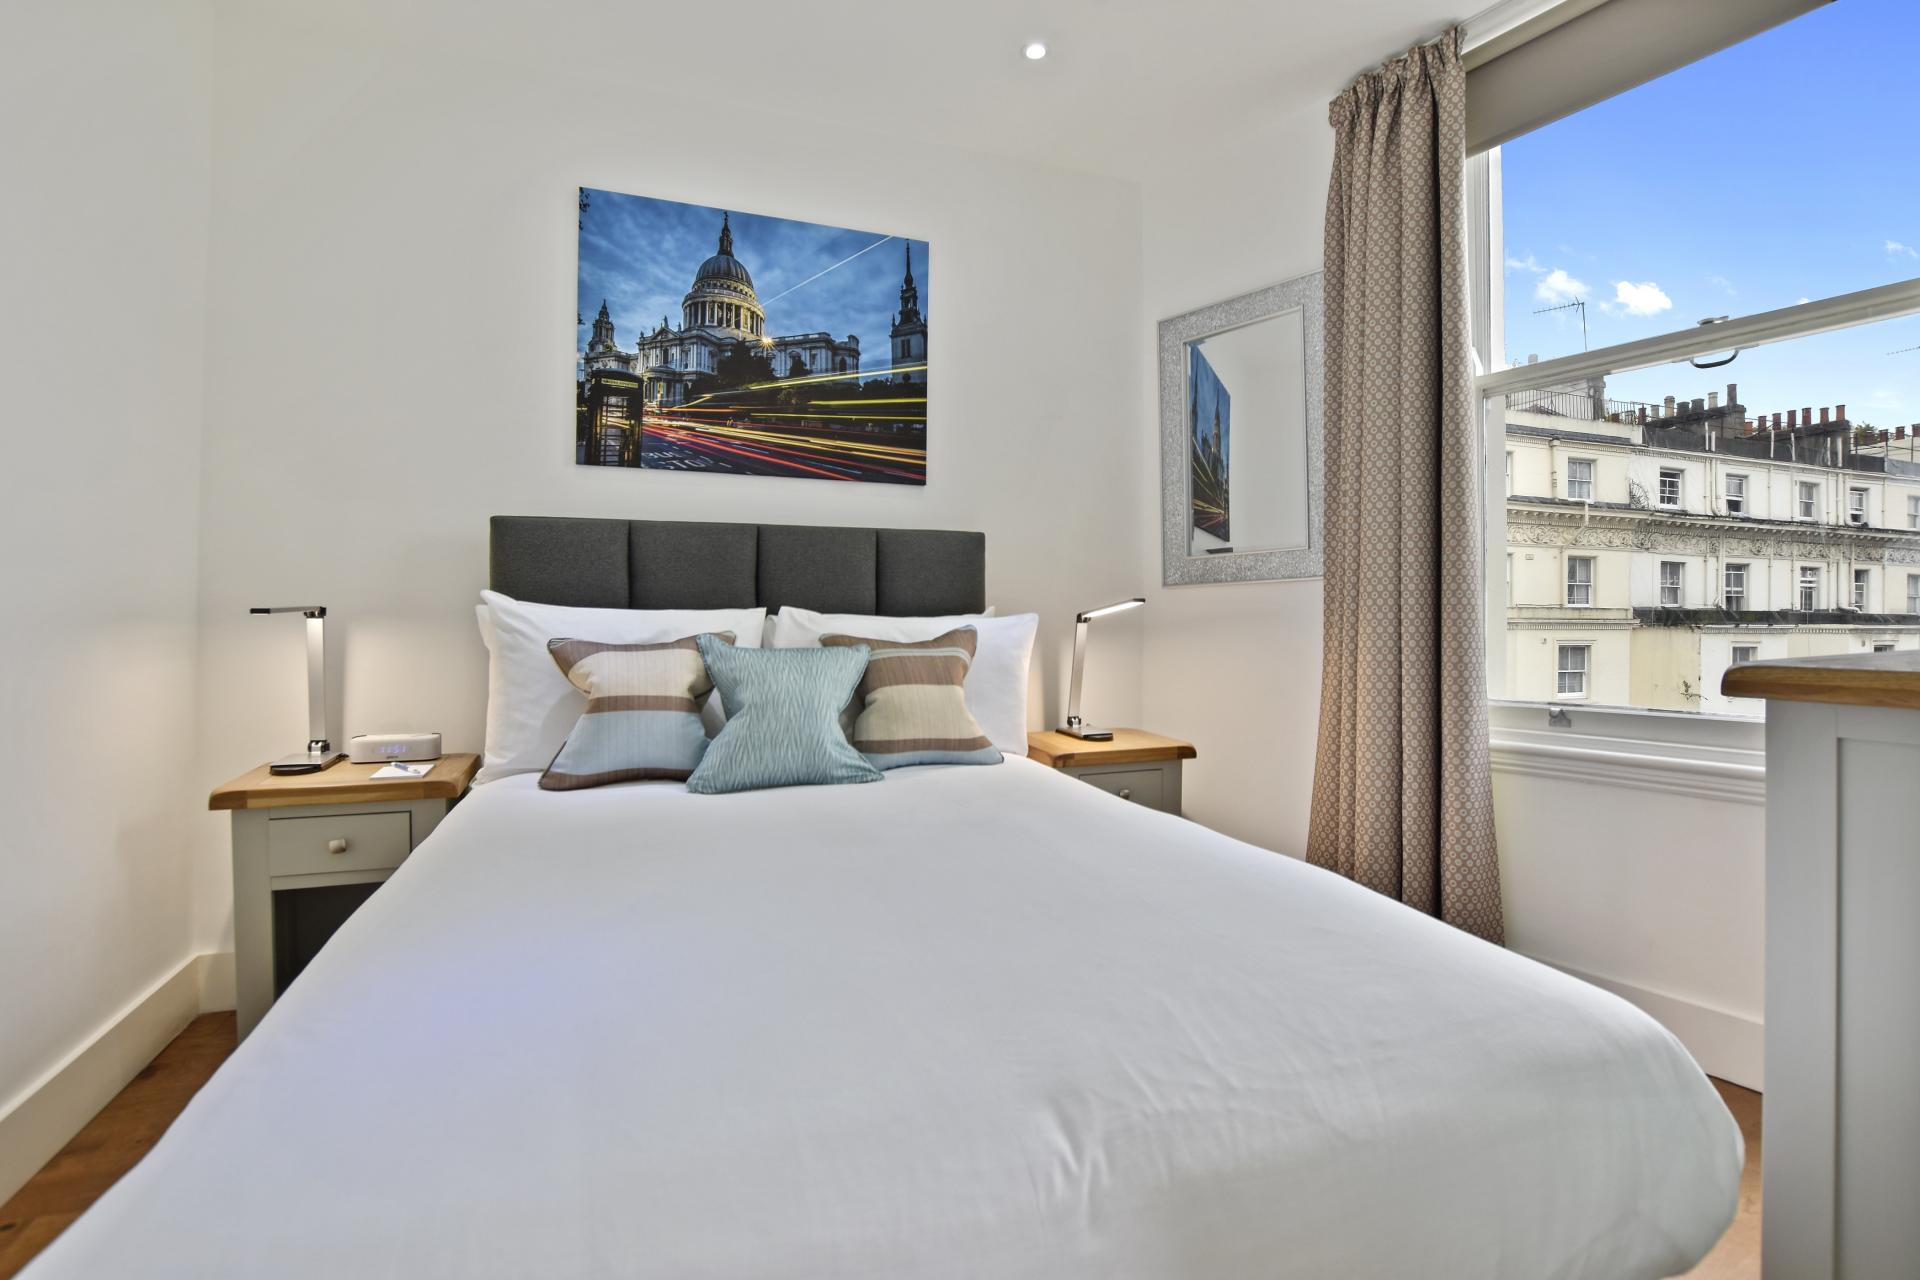 Bed at Leinster Square by Bridgestreet, Bayswater, London - Citybase Apartments